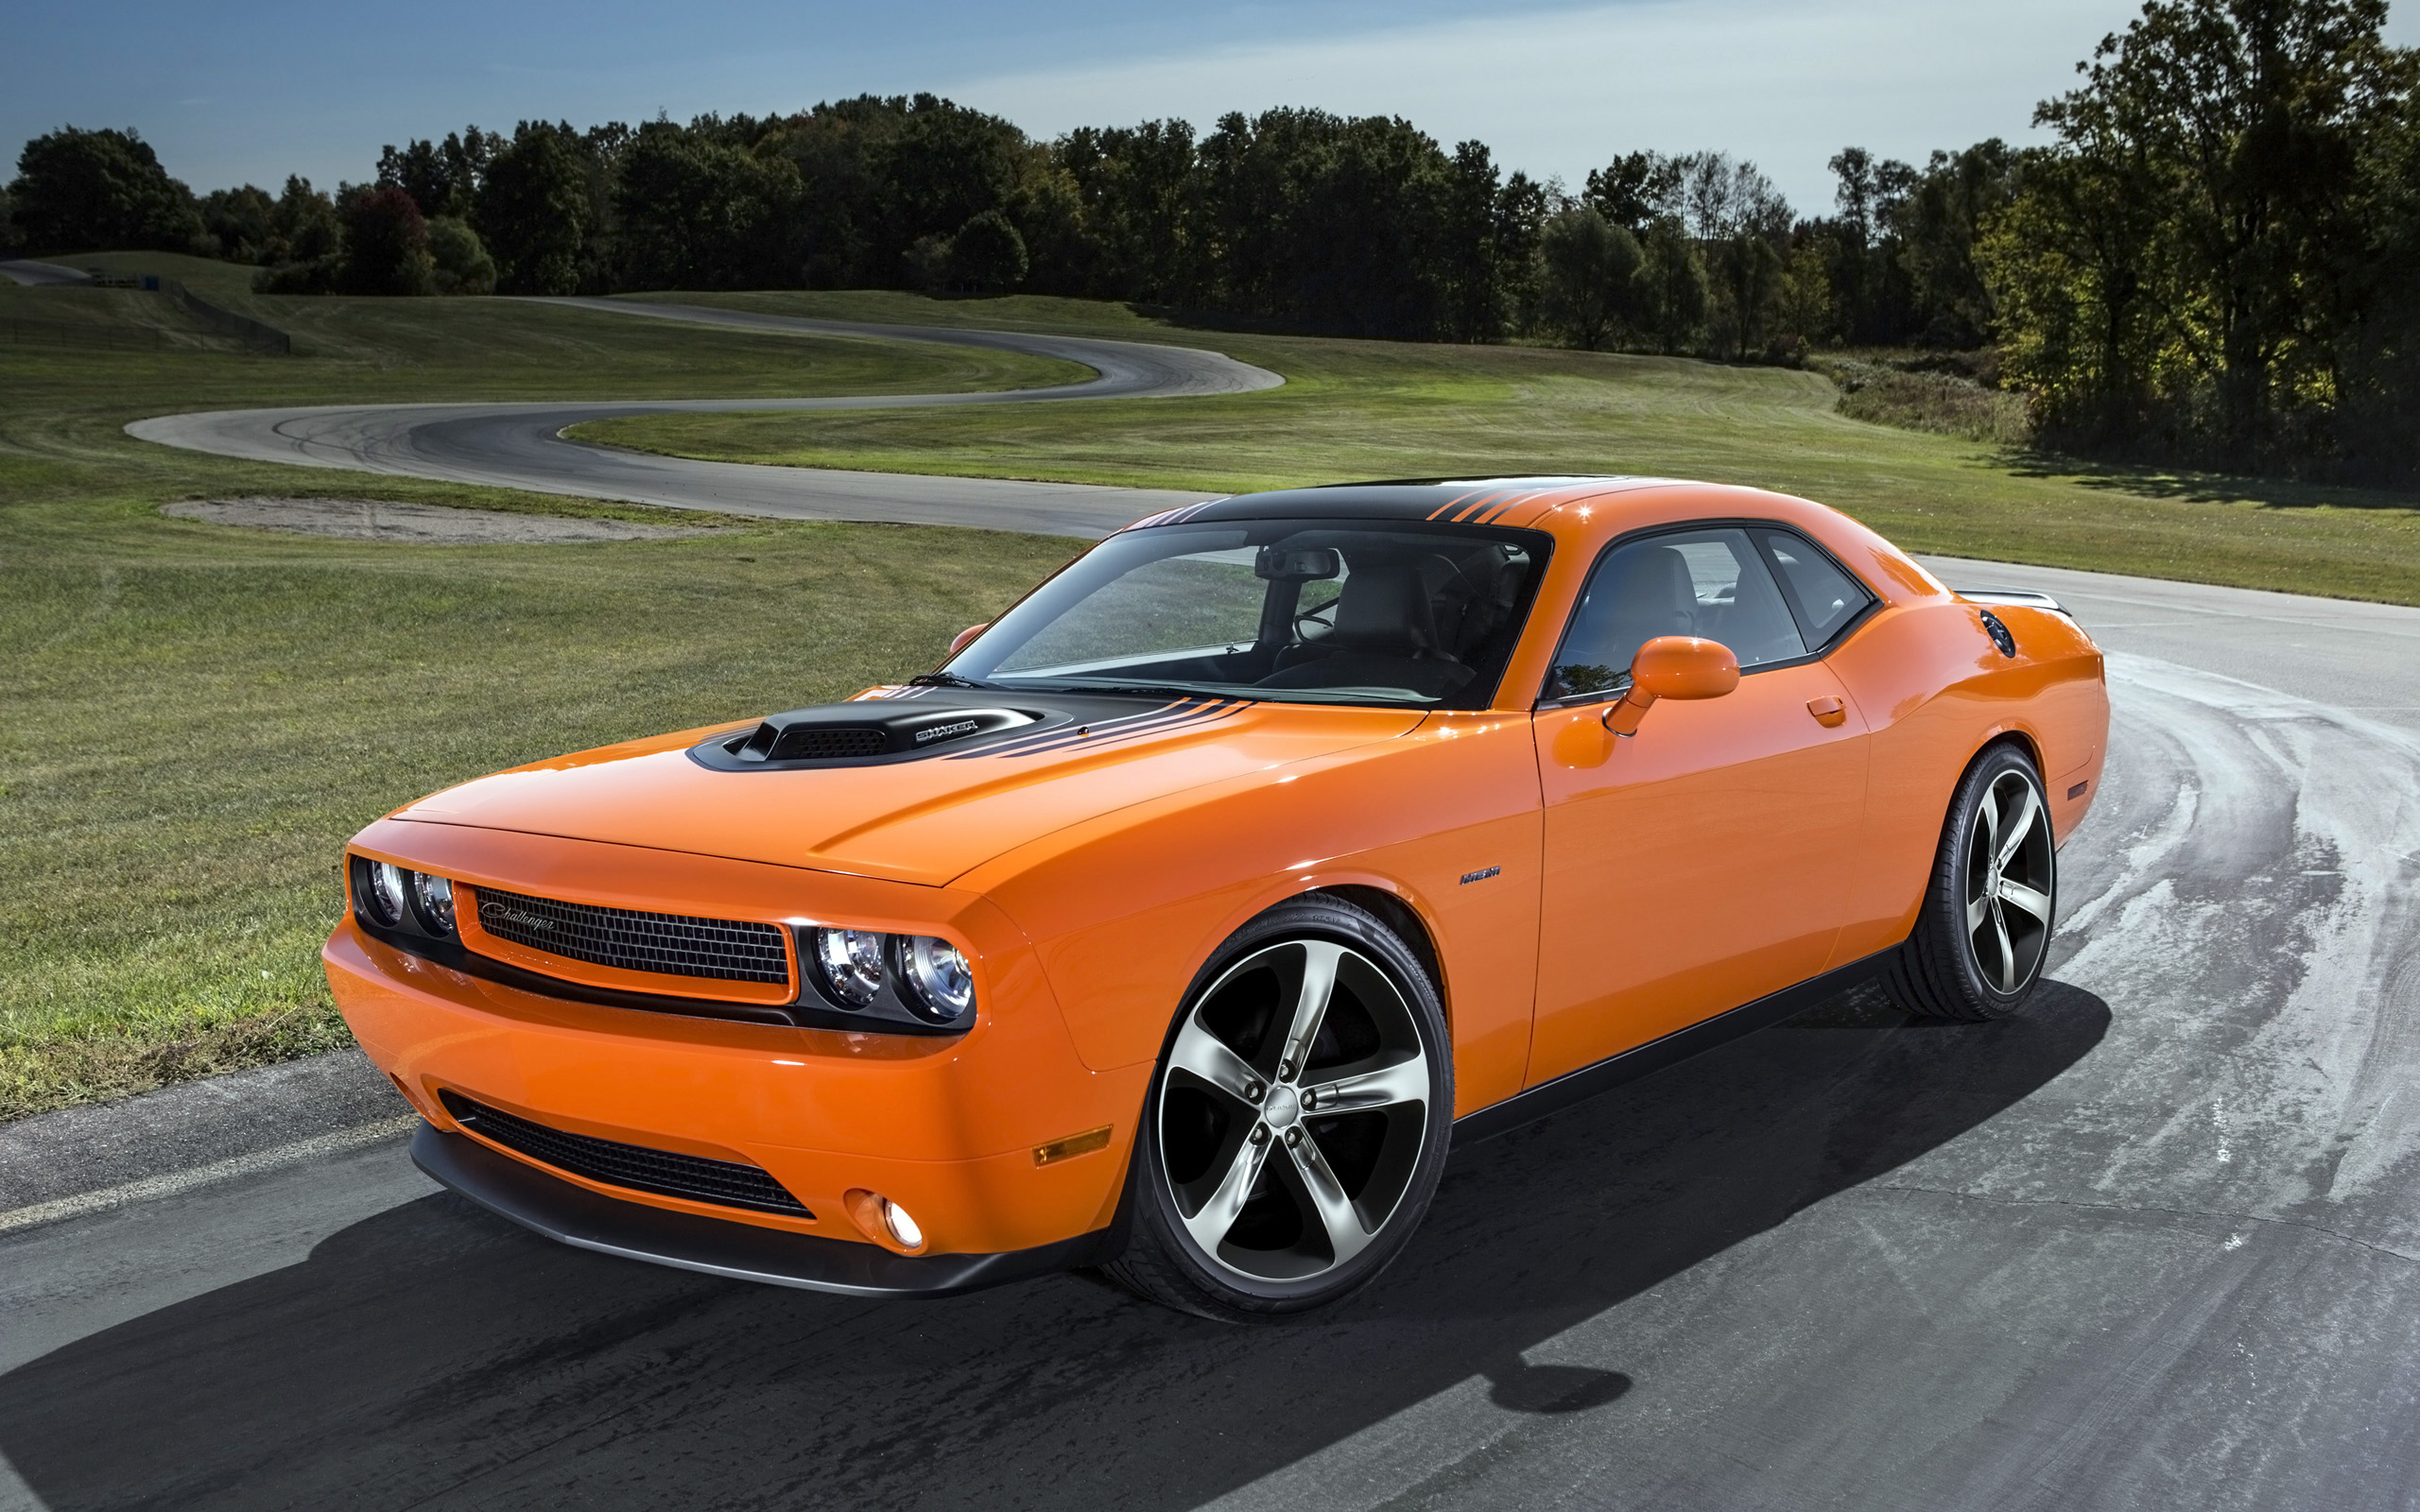 2014 Dodge Challenger RT Shaker Wallpapers Wallpapers HD 2560x1600